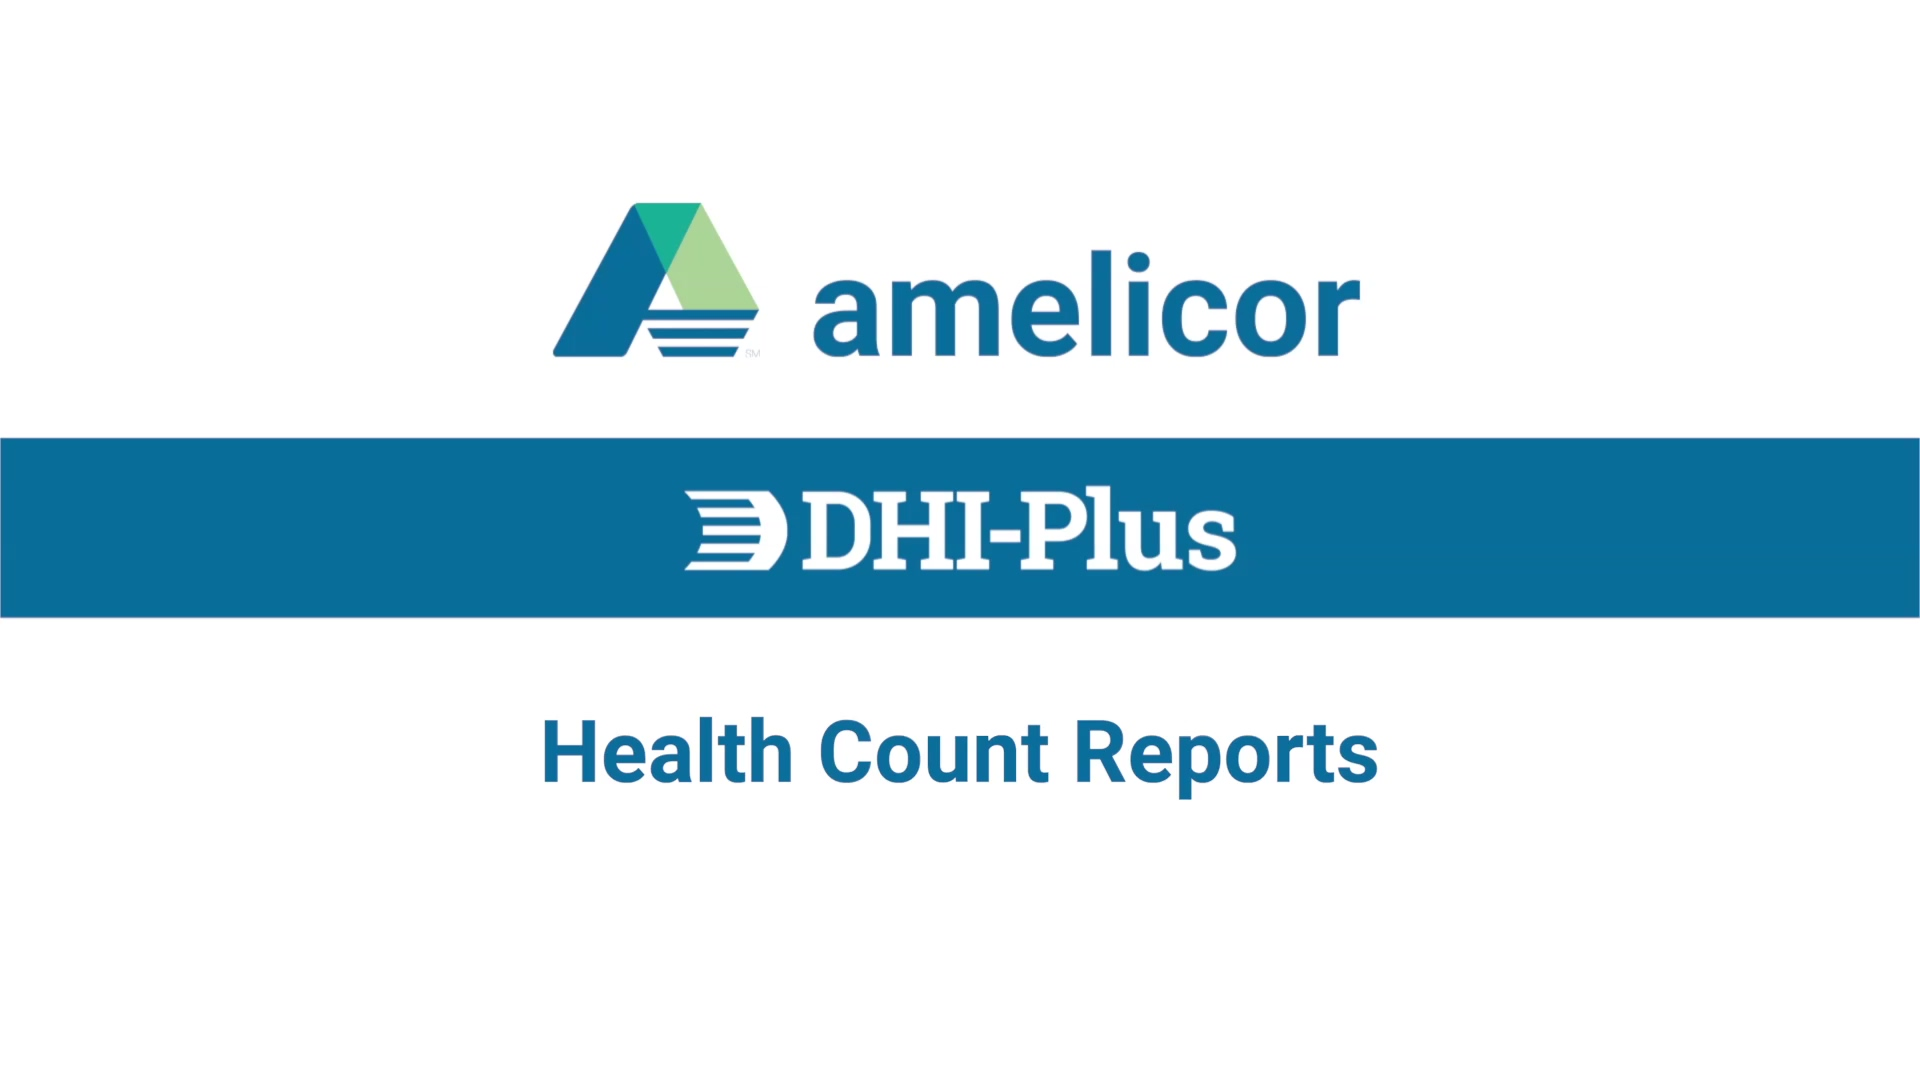 DHI-Plus Health Counts